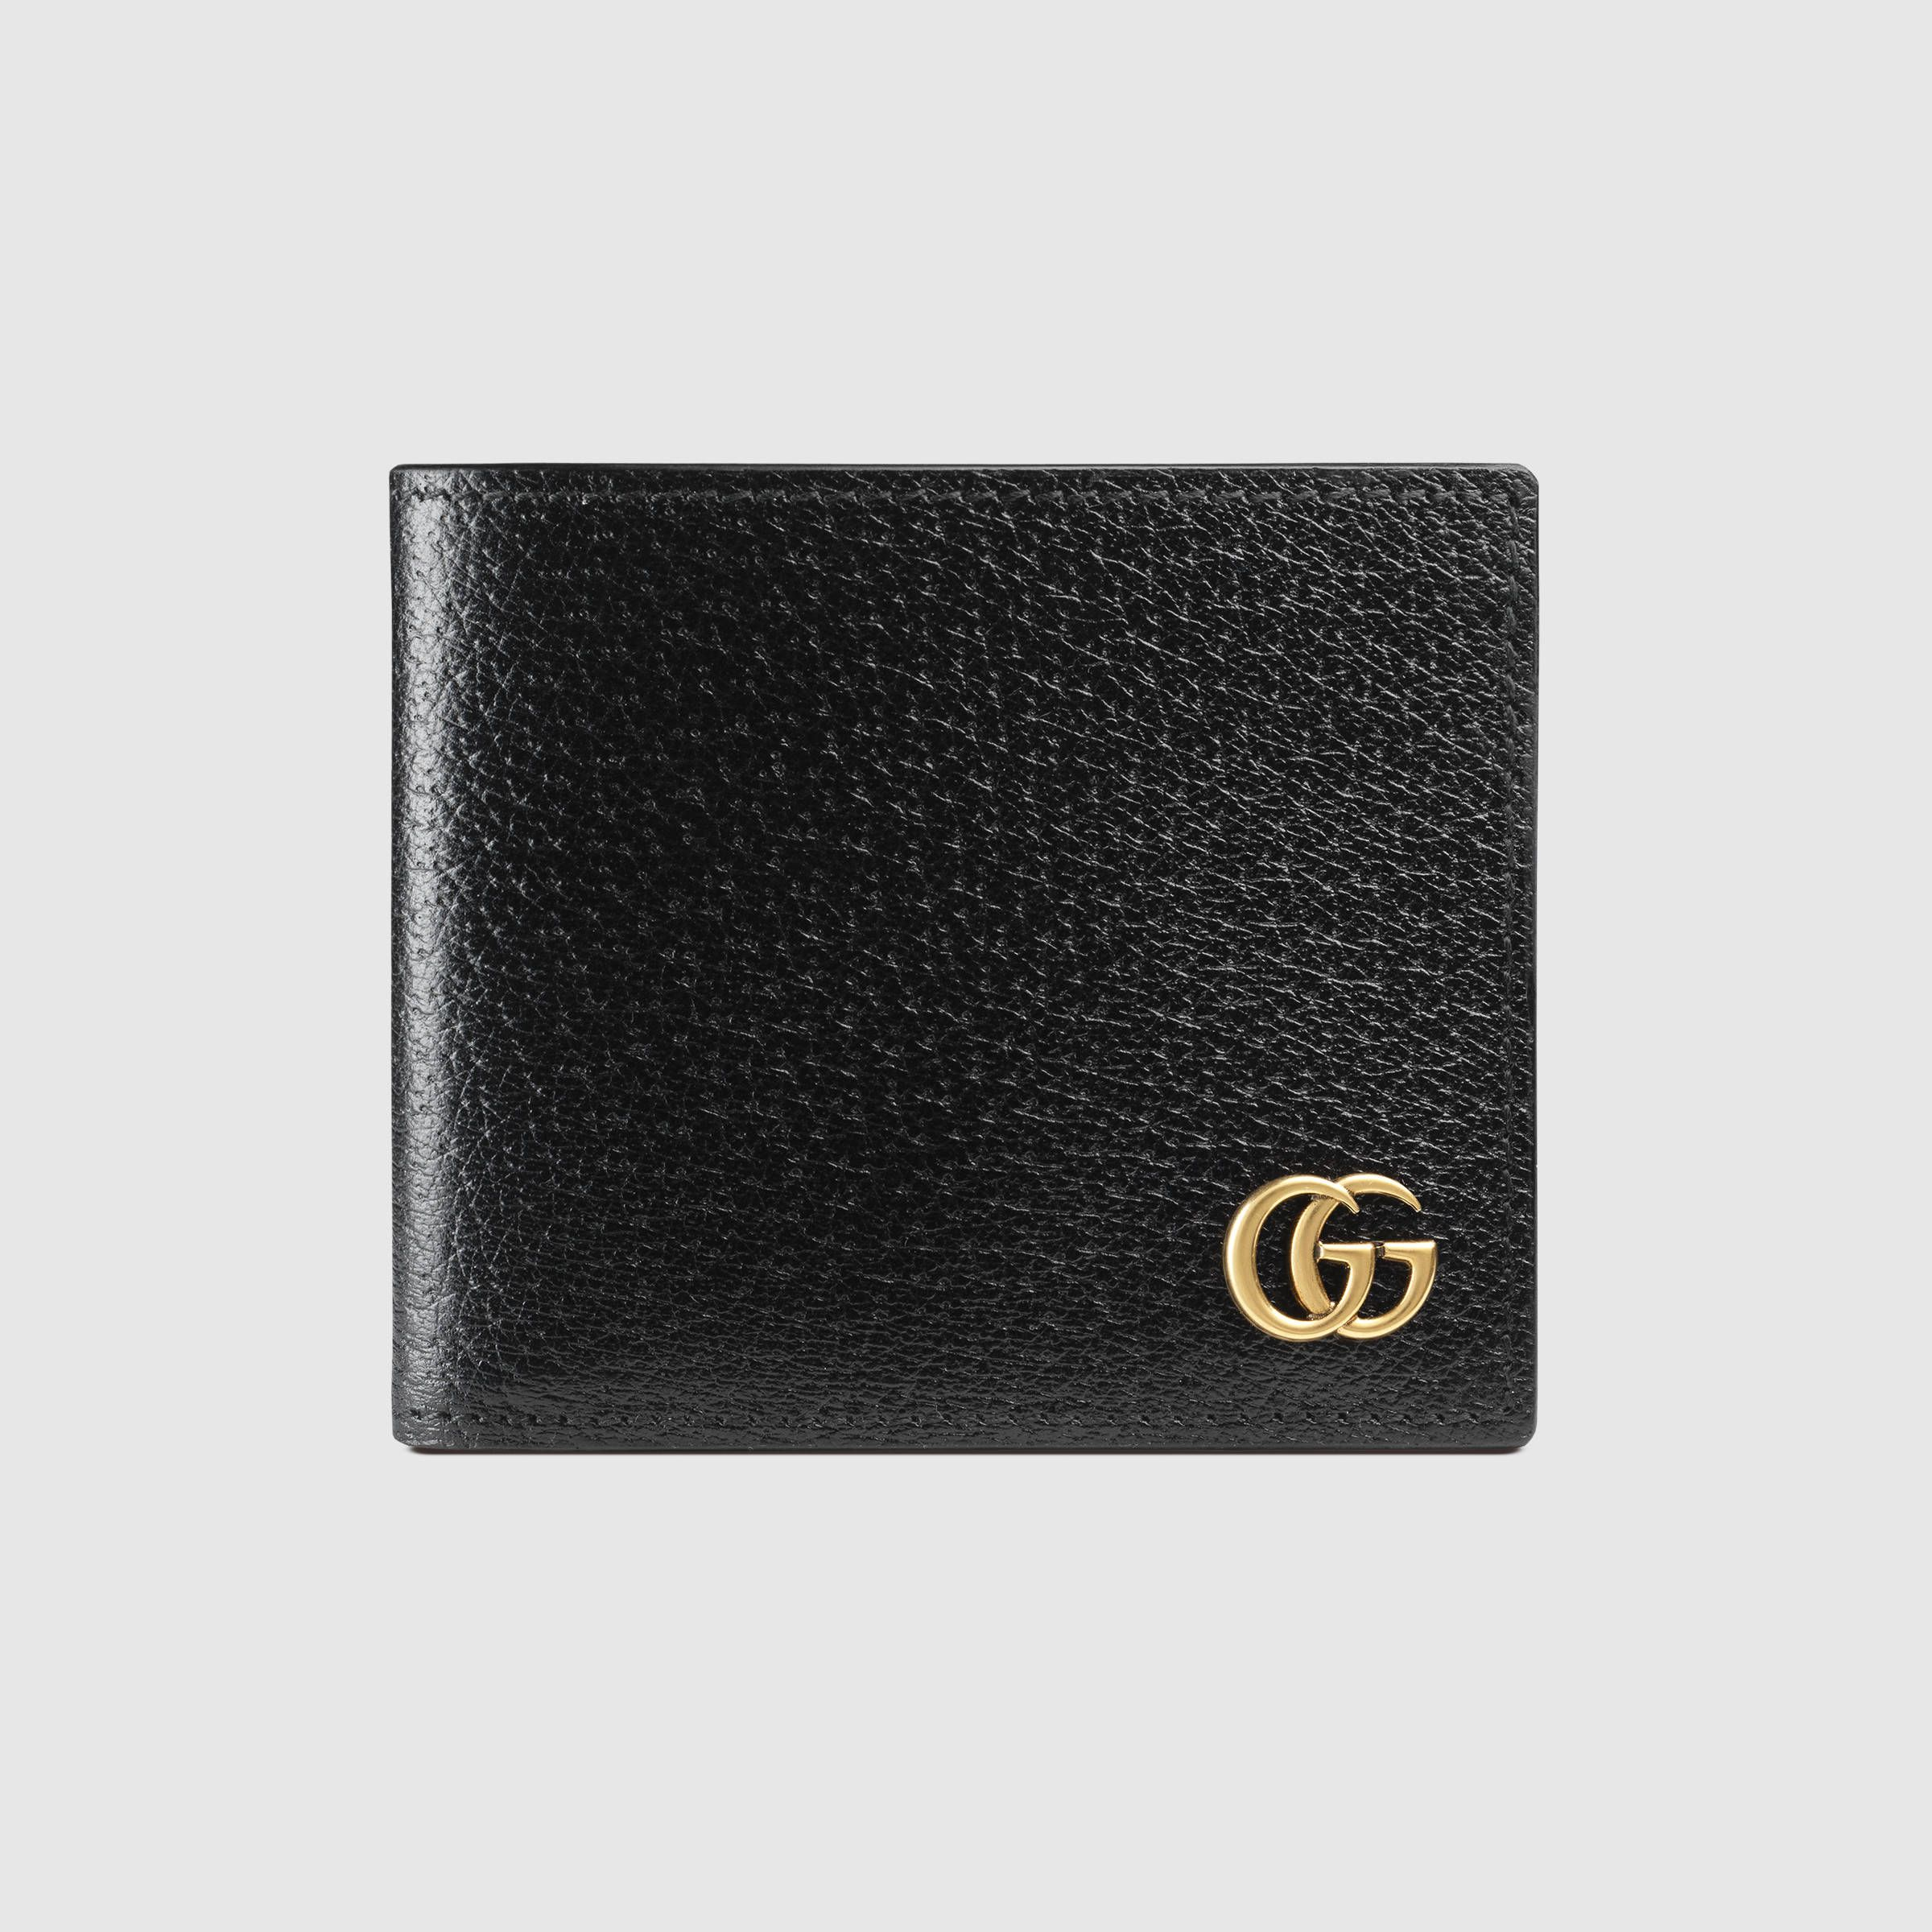 b9477aca275d GG Marmont leather bi-fold wallet | MENS WALLETS | Leather bifold ...